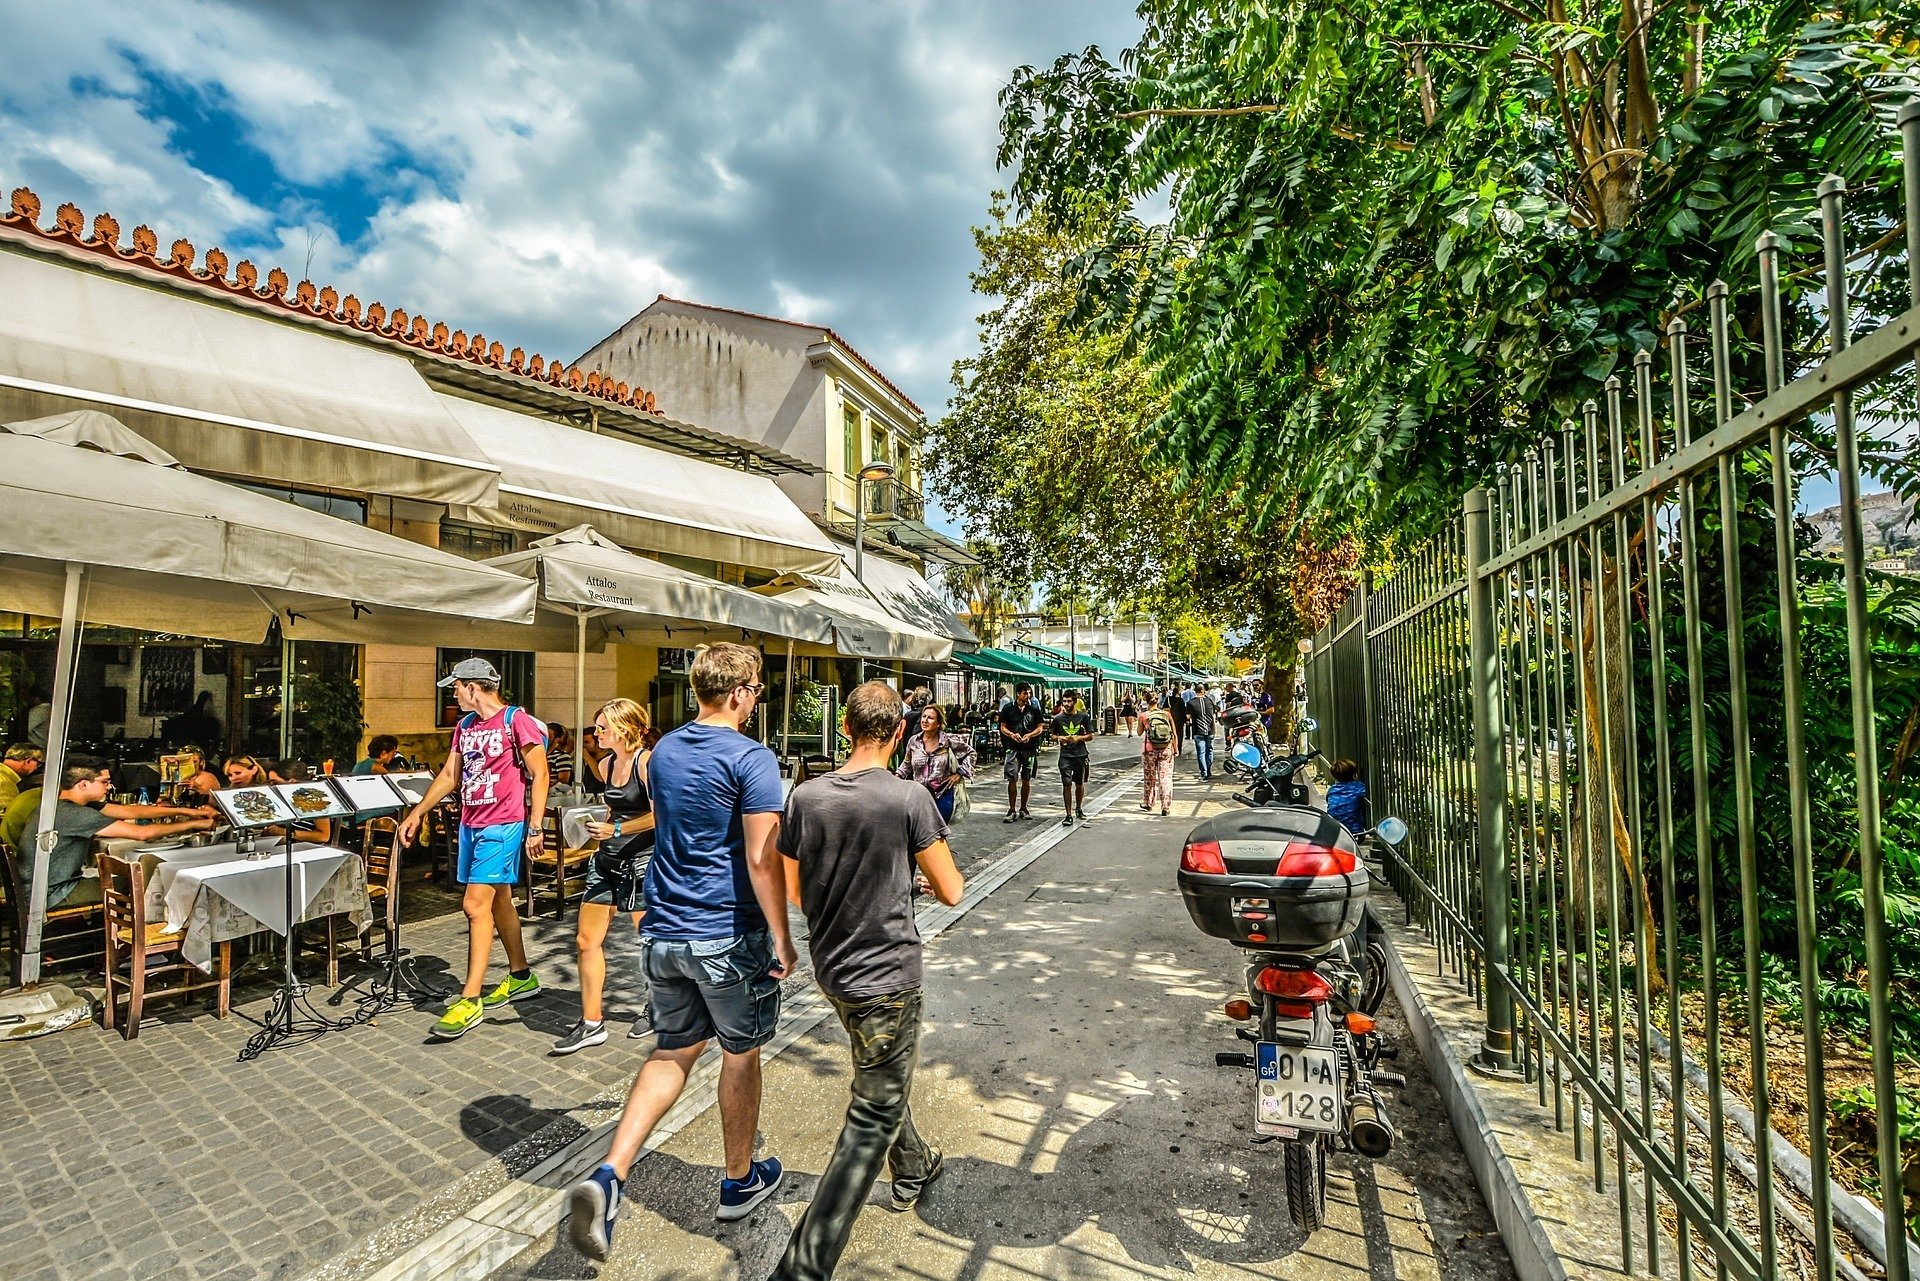 When looking where to stay in Athens, Plaka is our favorite!